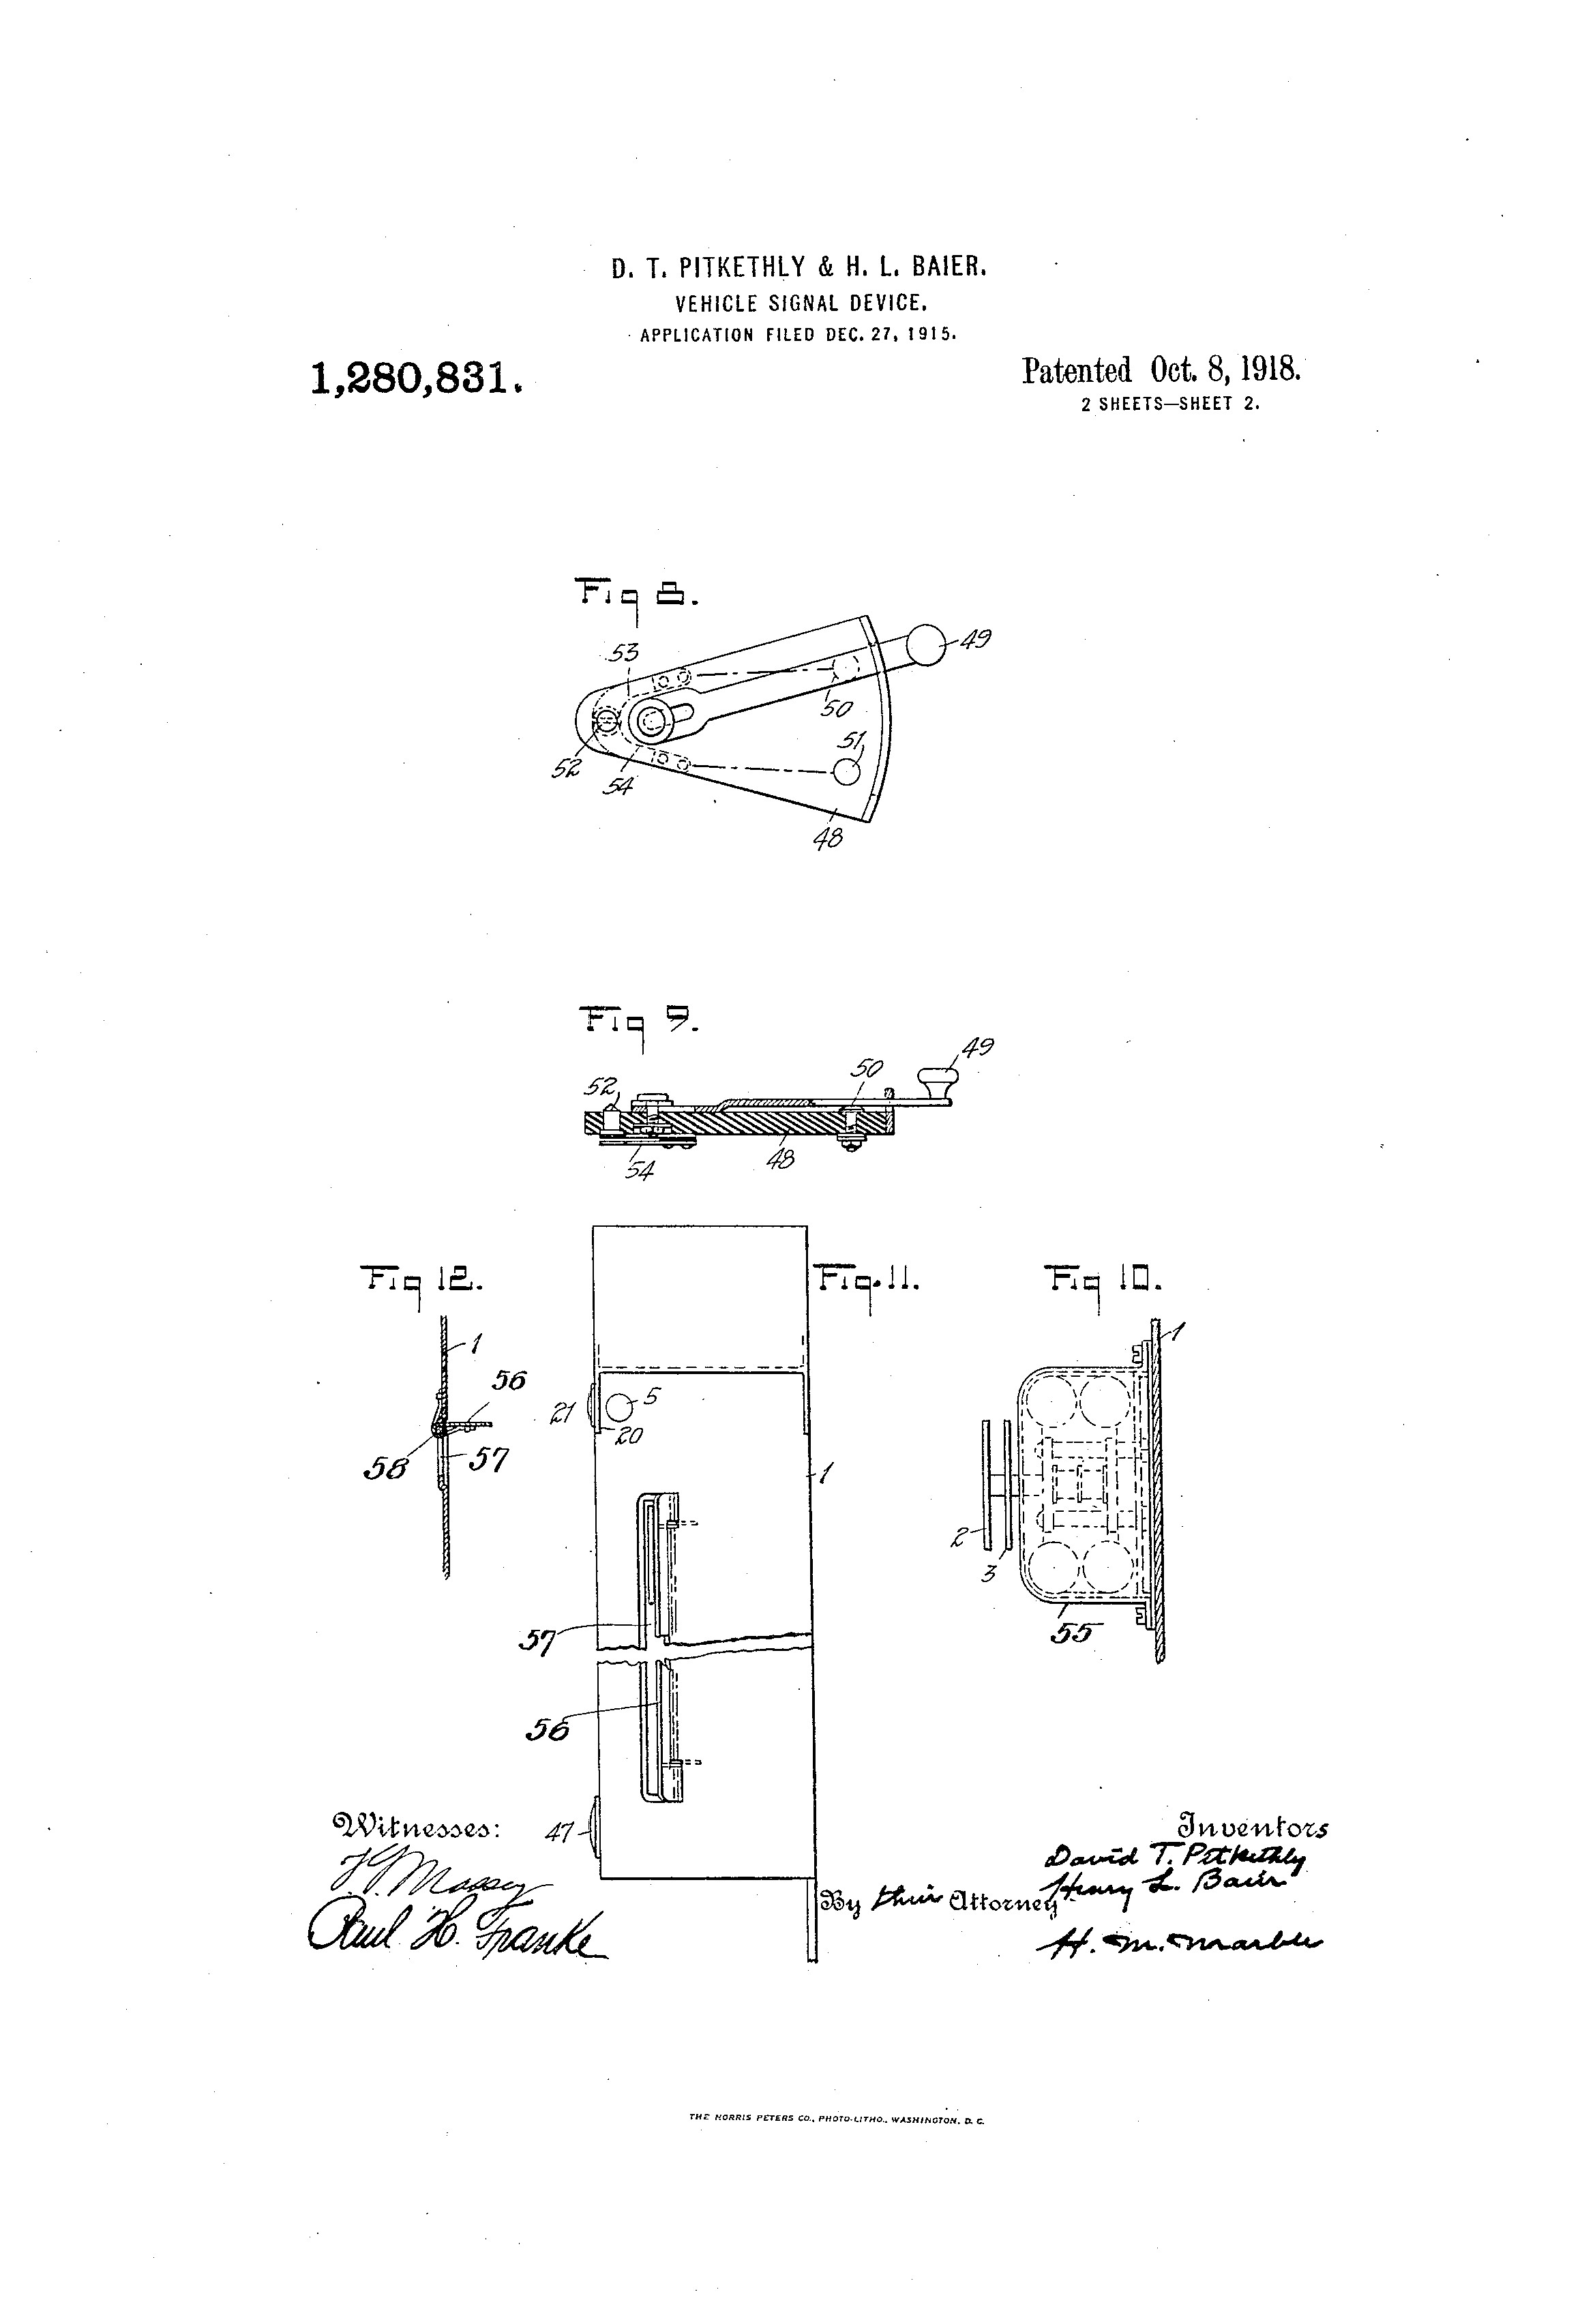 Car Frame Diagram Us A Vehicle Signal Device Google Patents Of Car Frame Diagram